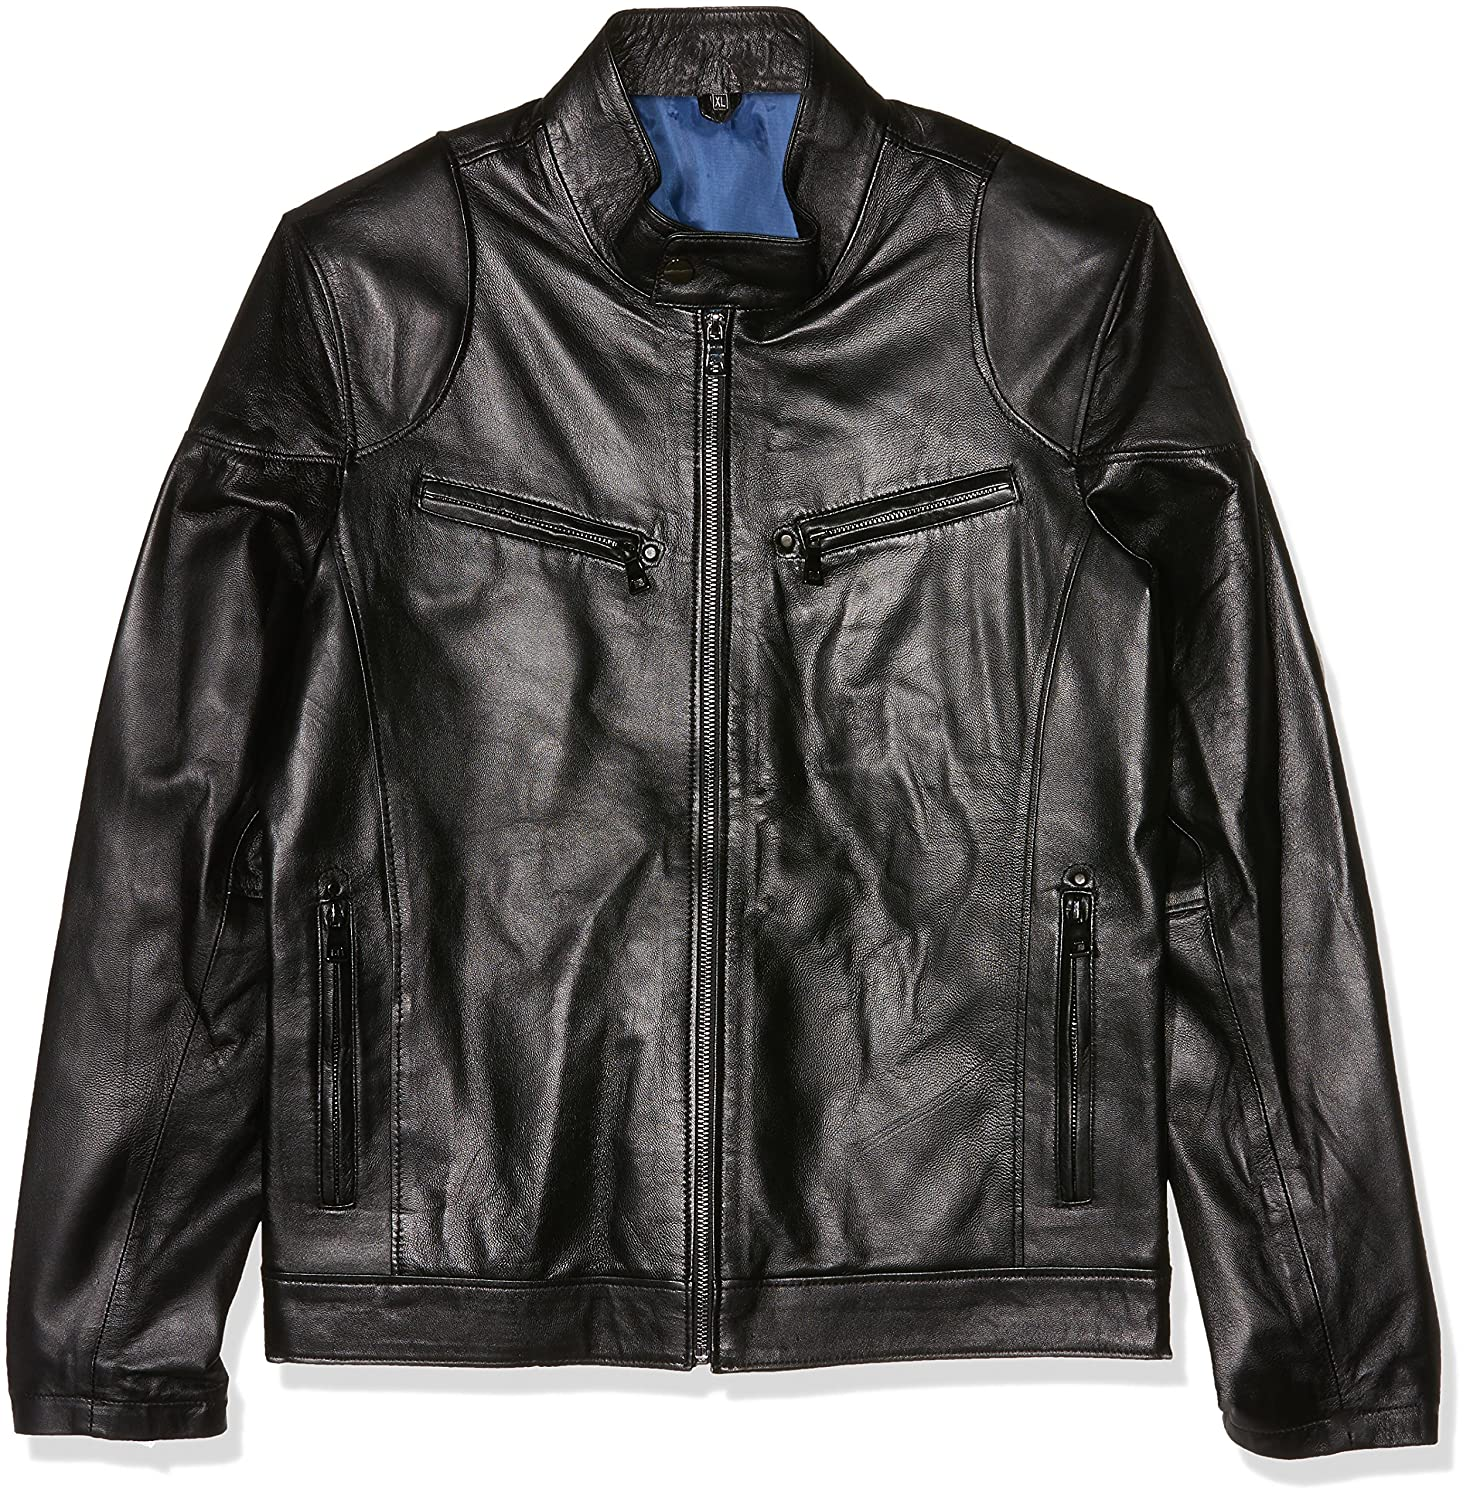 Giorgio Di Mare Cazadora Piel Men's Leather Jacket